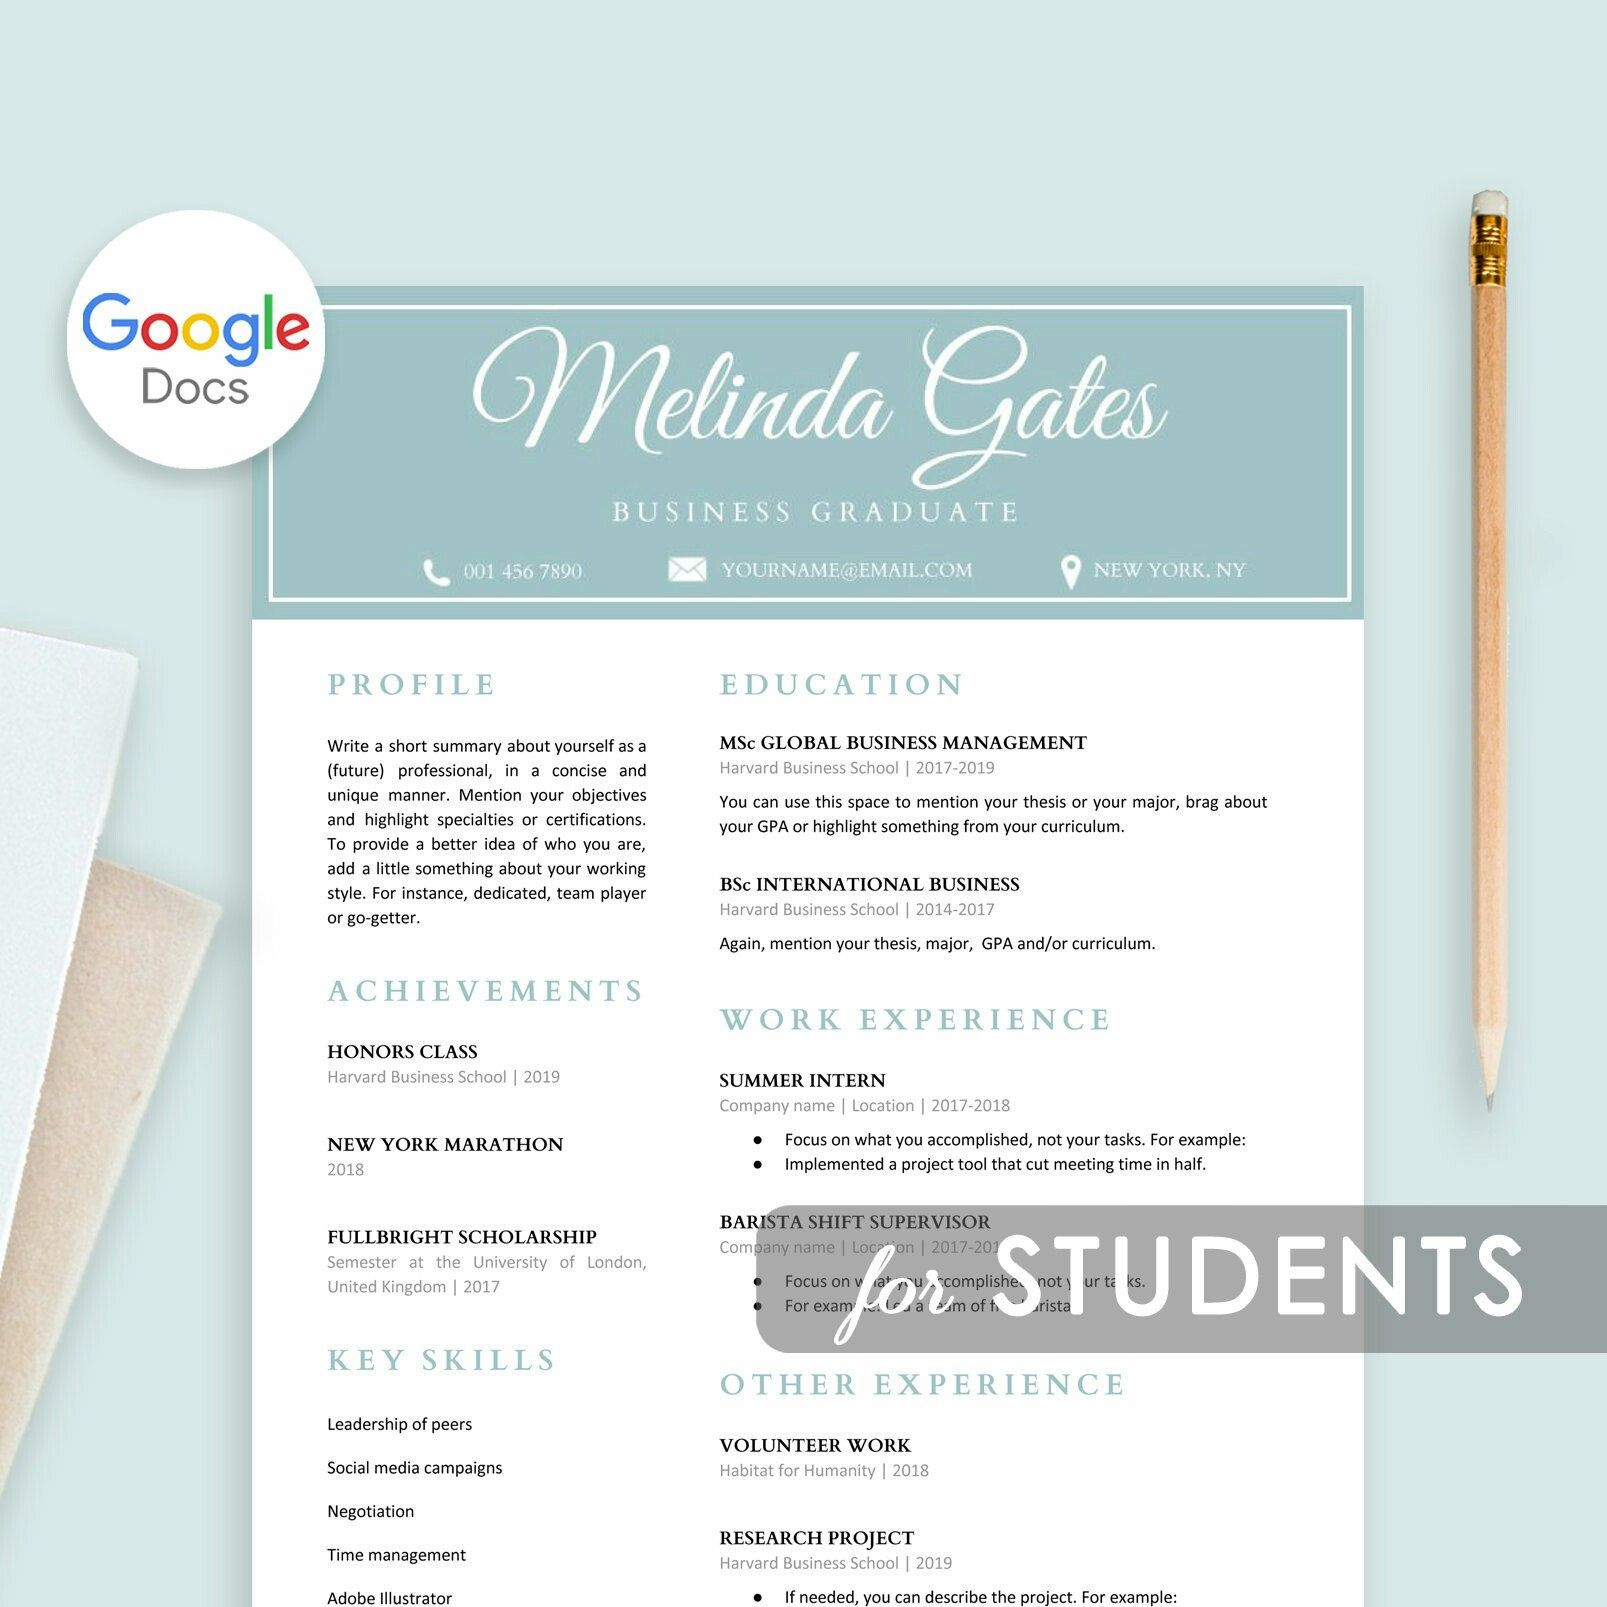 Student Resume Template Google Docs, Resume For Students